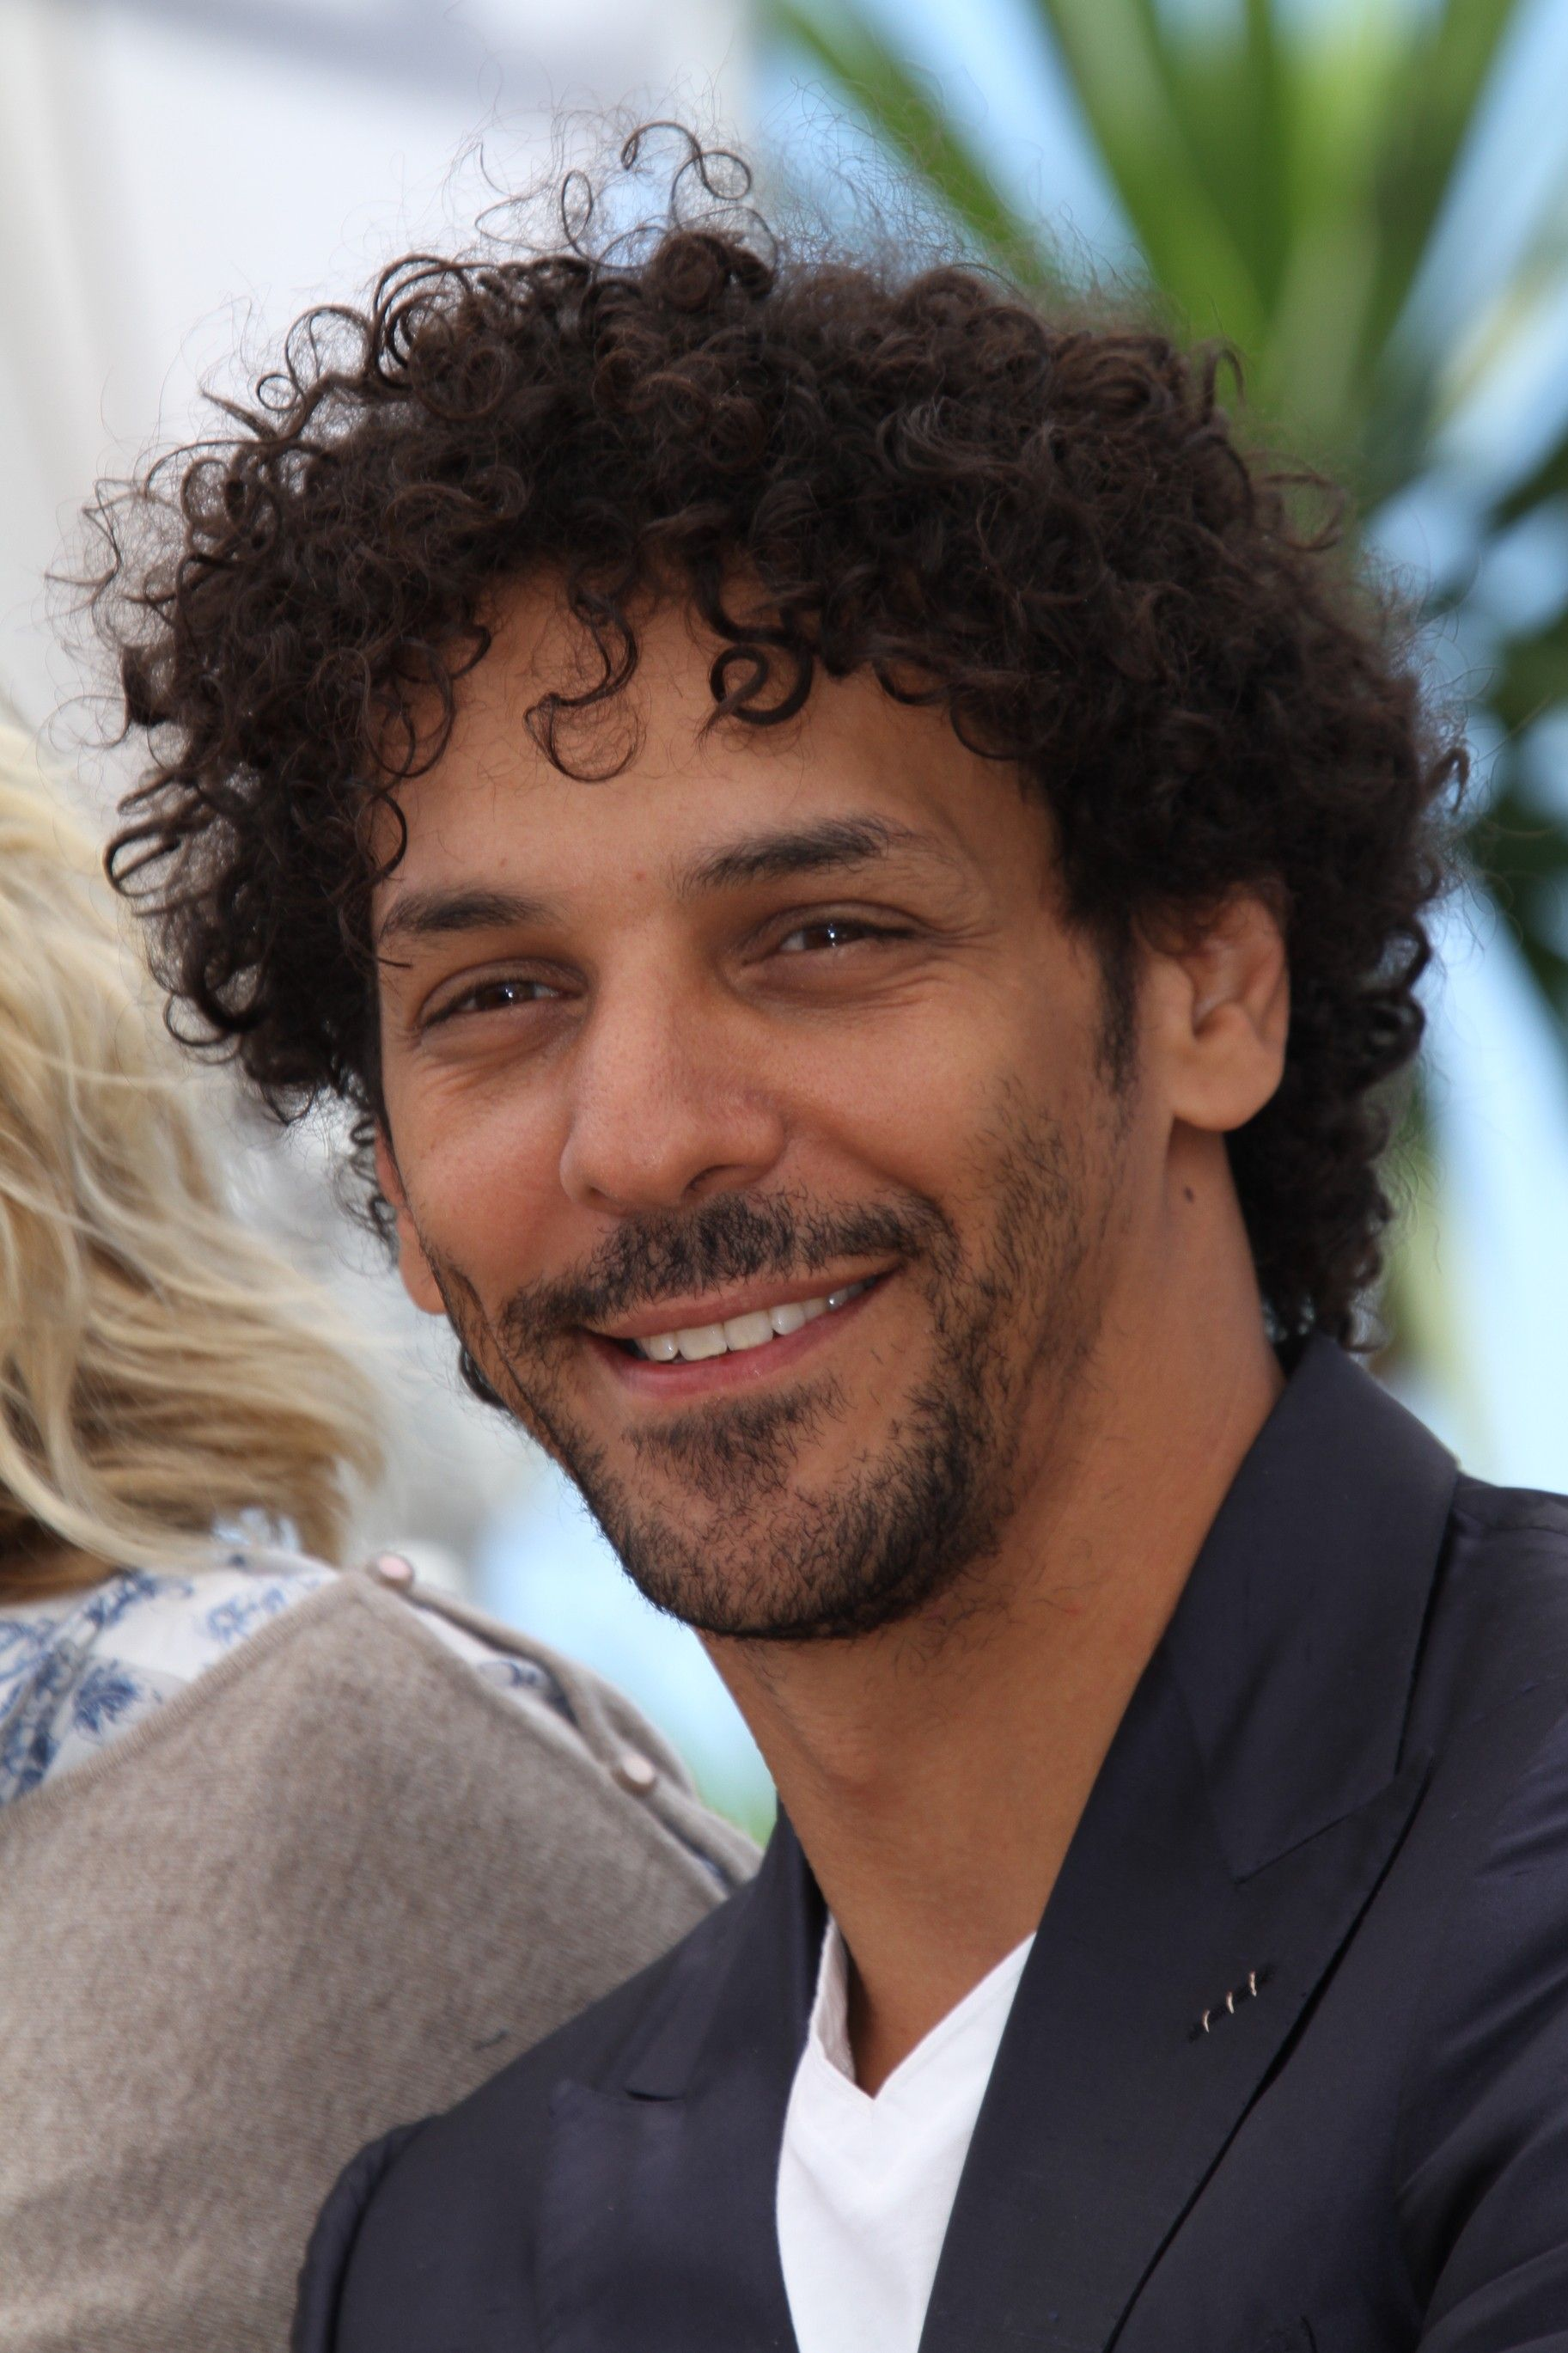 Curly Hair Biracial Men Google Search Cool Stuff Curly Hair